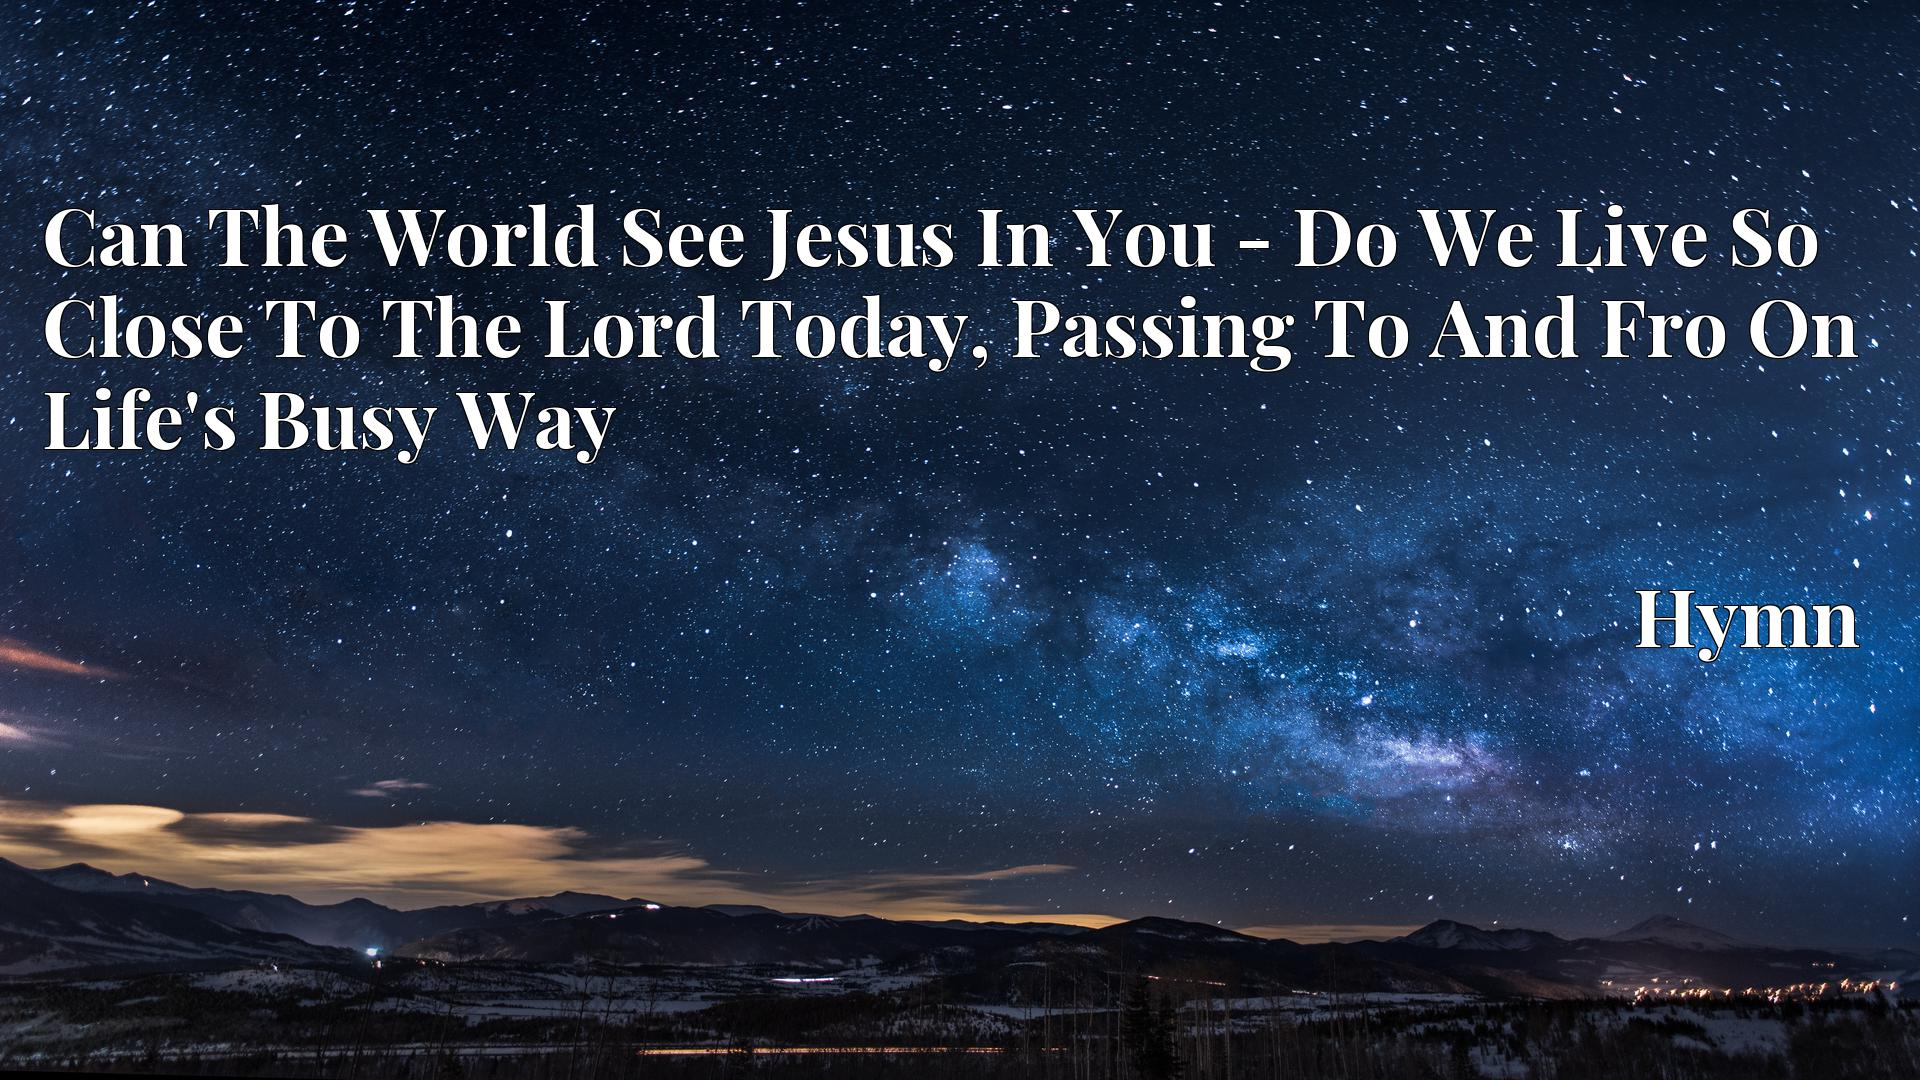 Can The World See Jesus In You - Do We Live So Close To The Lord Today, Passing To And Fro On Life's Busy Way Hymn